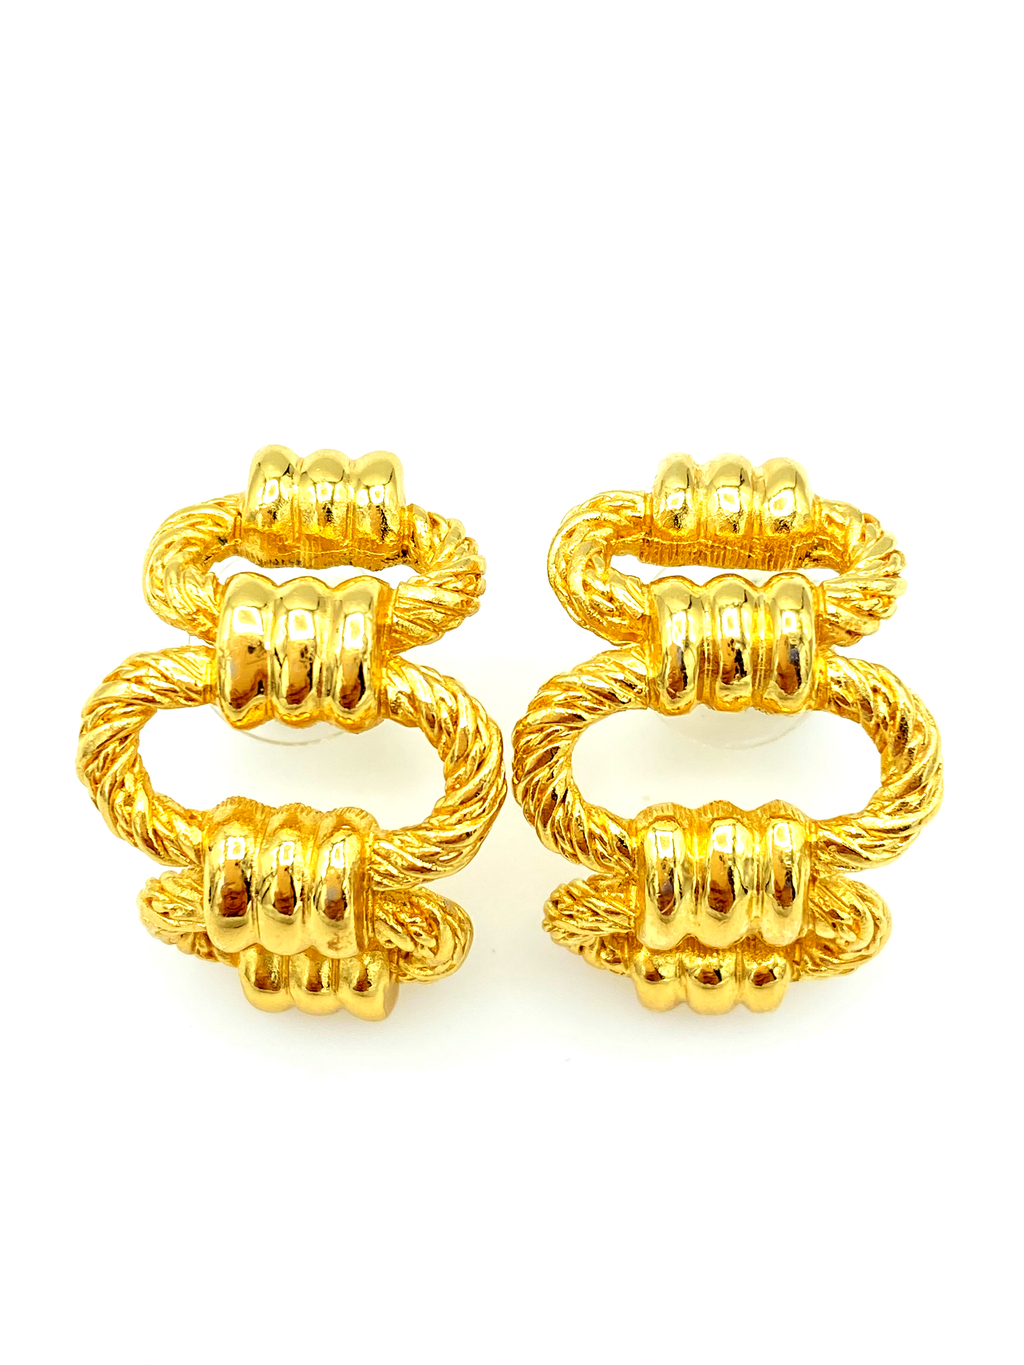 update alt-text with template Christian Dior Gold Chain Link Half Hoop Vintage Pierced Earrings-Earrings-Christian Dior-[trending designer jewelry]-[christian dior jewelry]-[Sustainable Fashion]